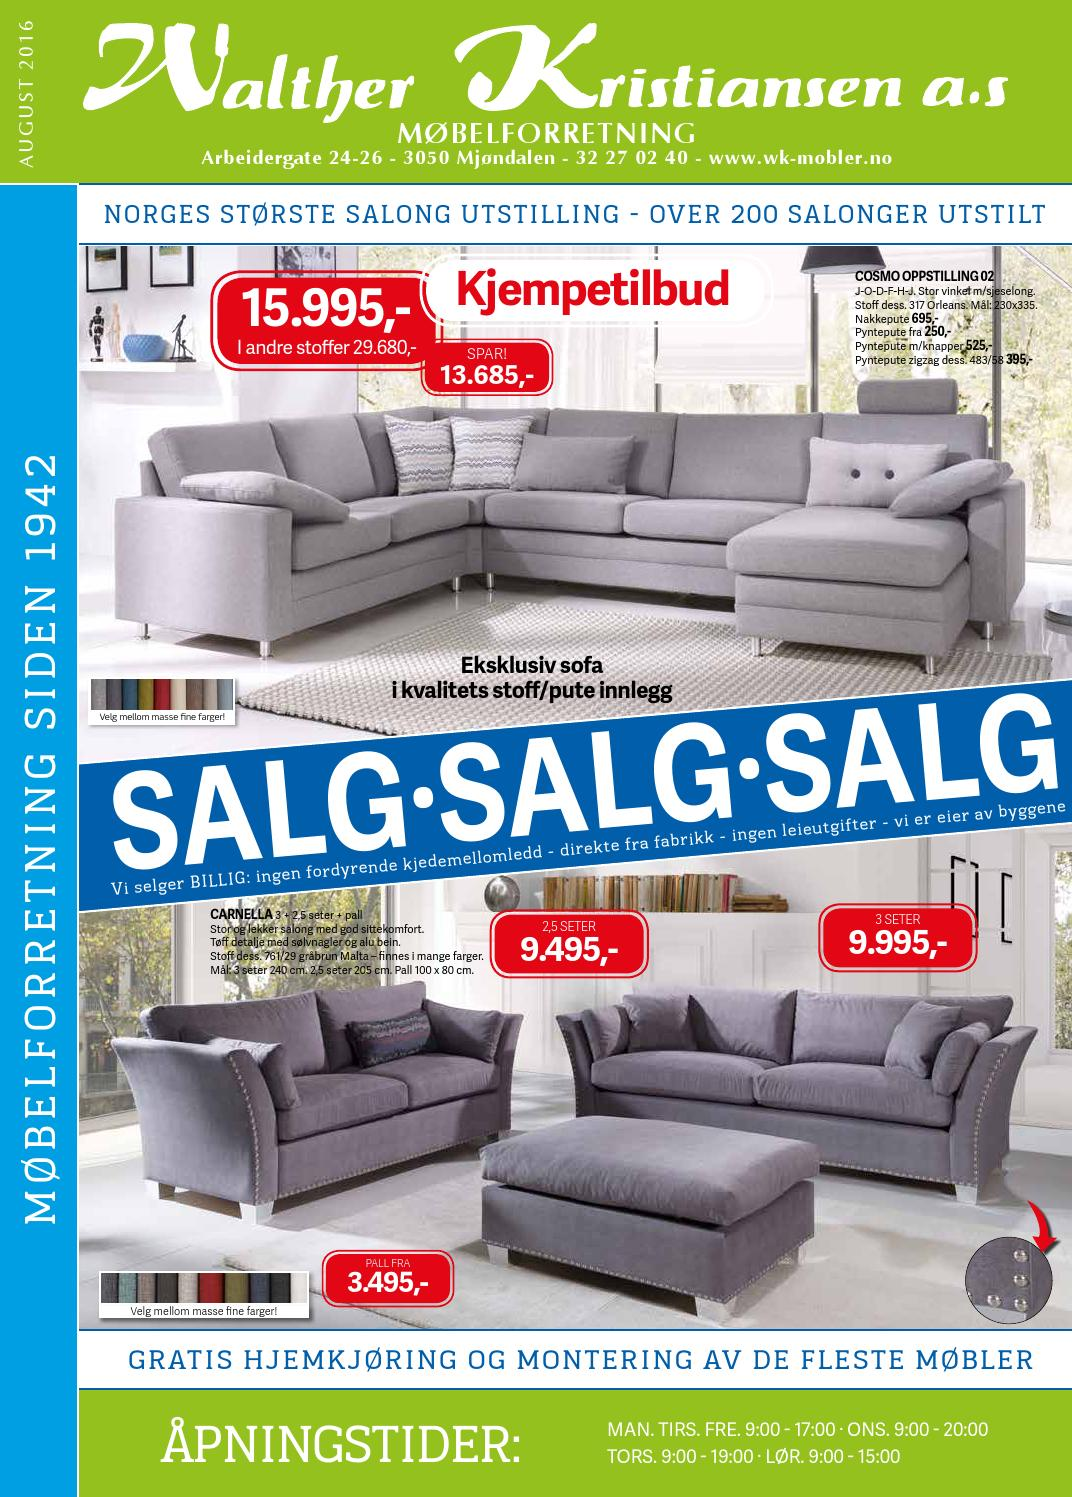 642 walther juni by mymind_dk - issuu